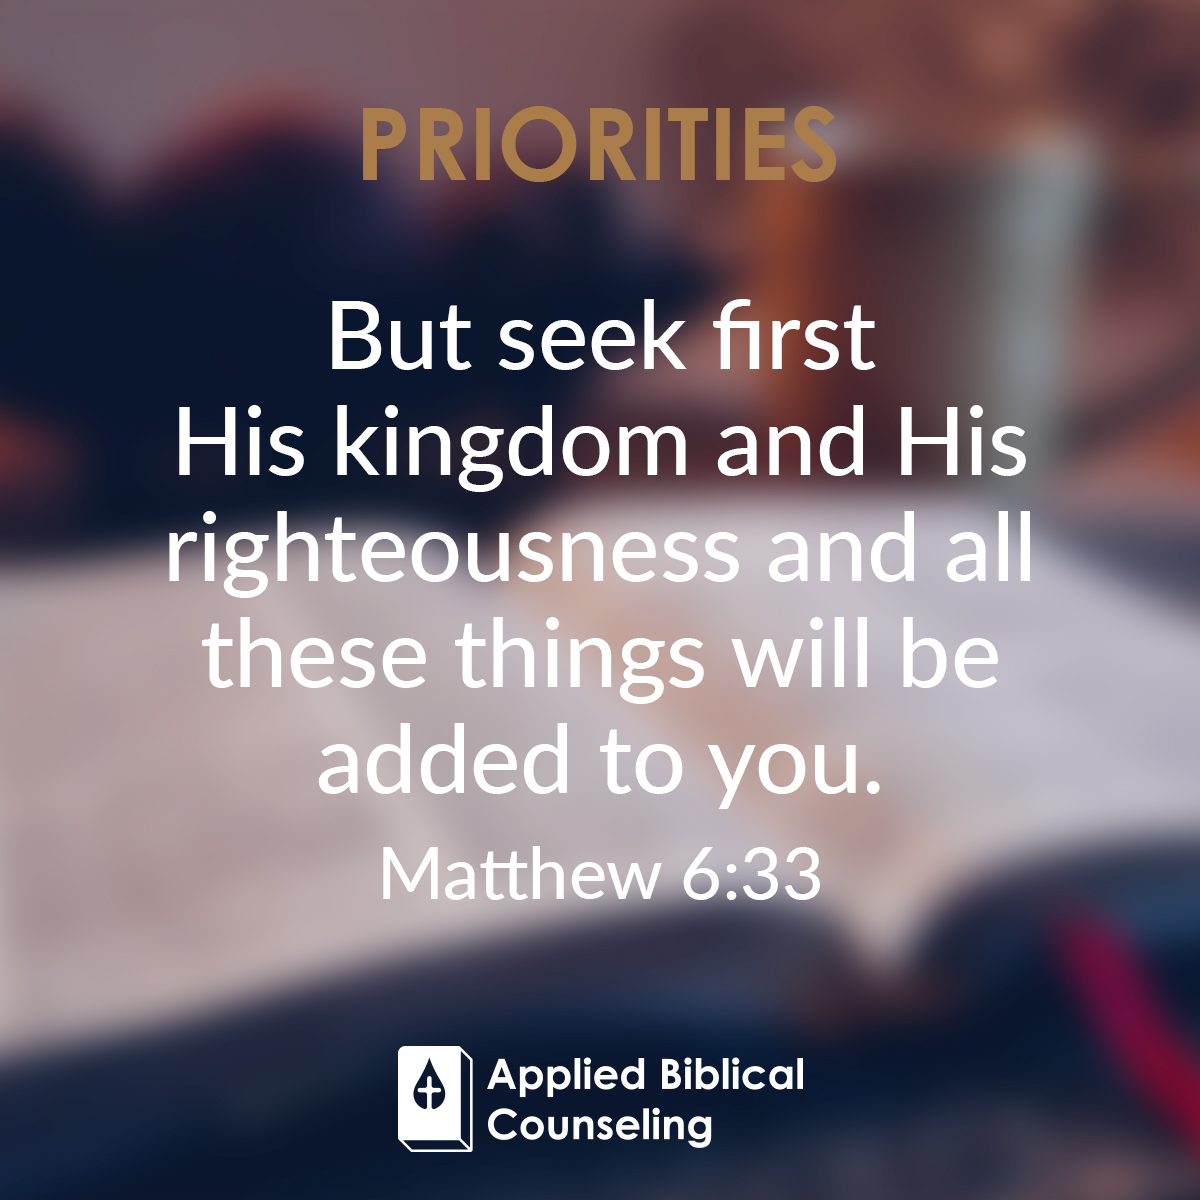 Applied Biblical Counseling Facebook w21 Priorities 5